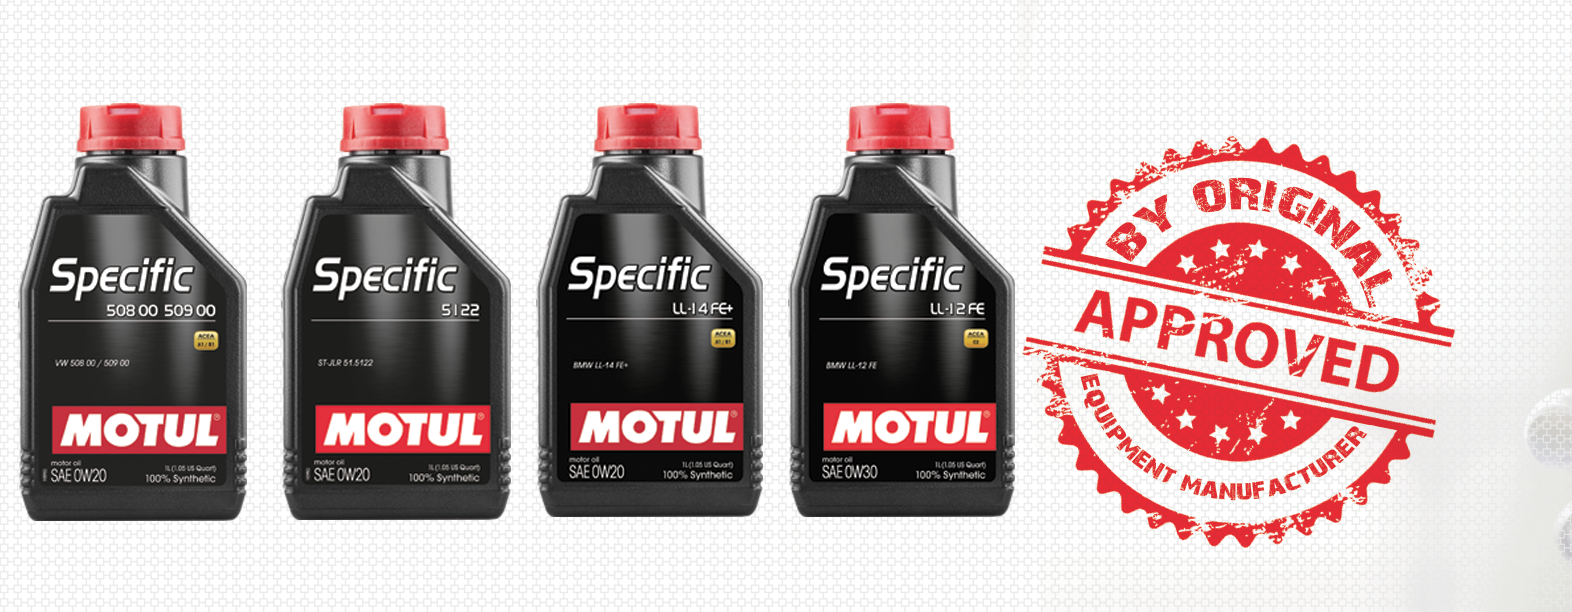 Motul has joined forces with manufacturers to reduce fuel consumption and emissions